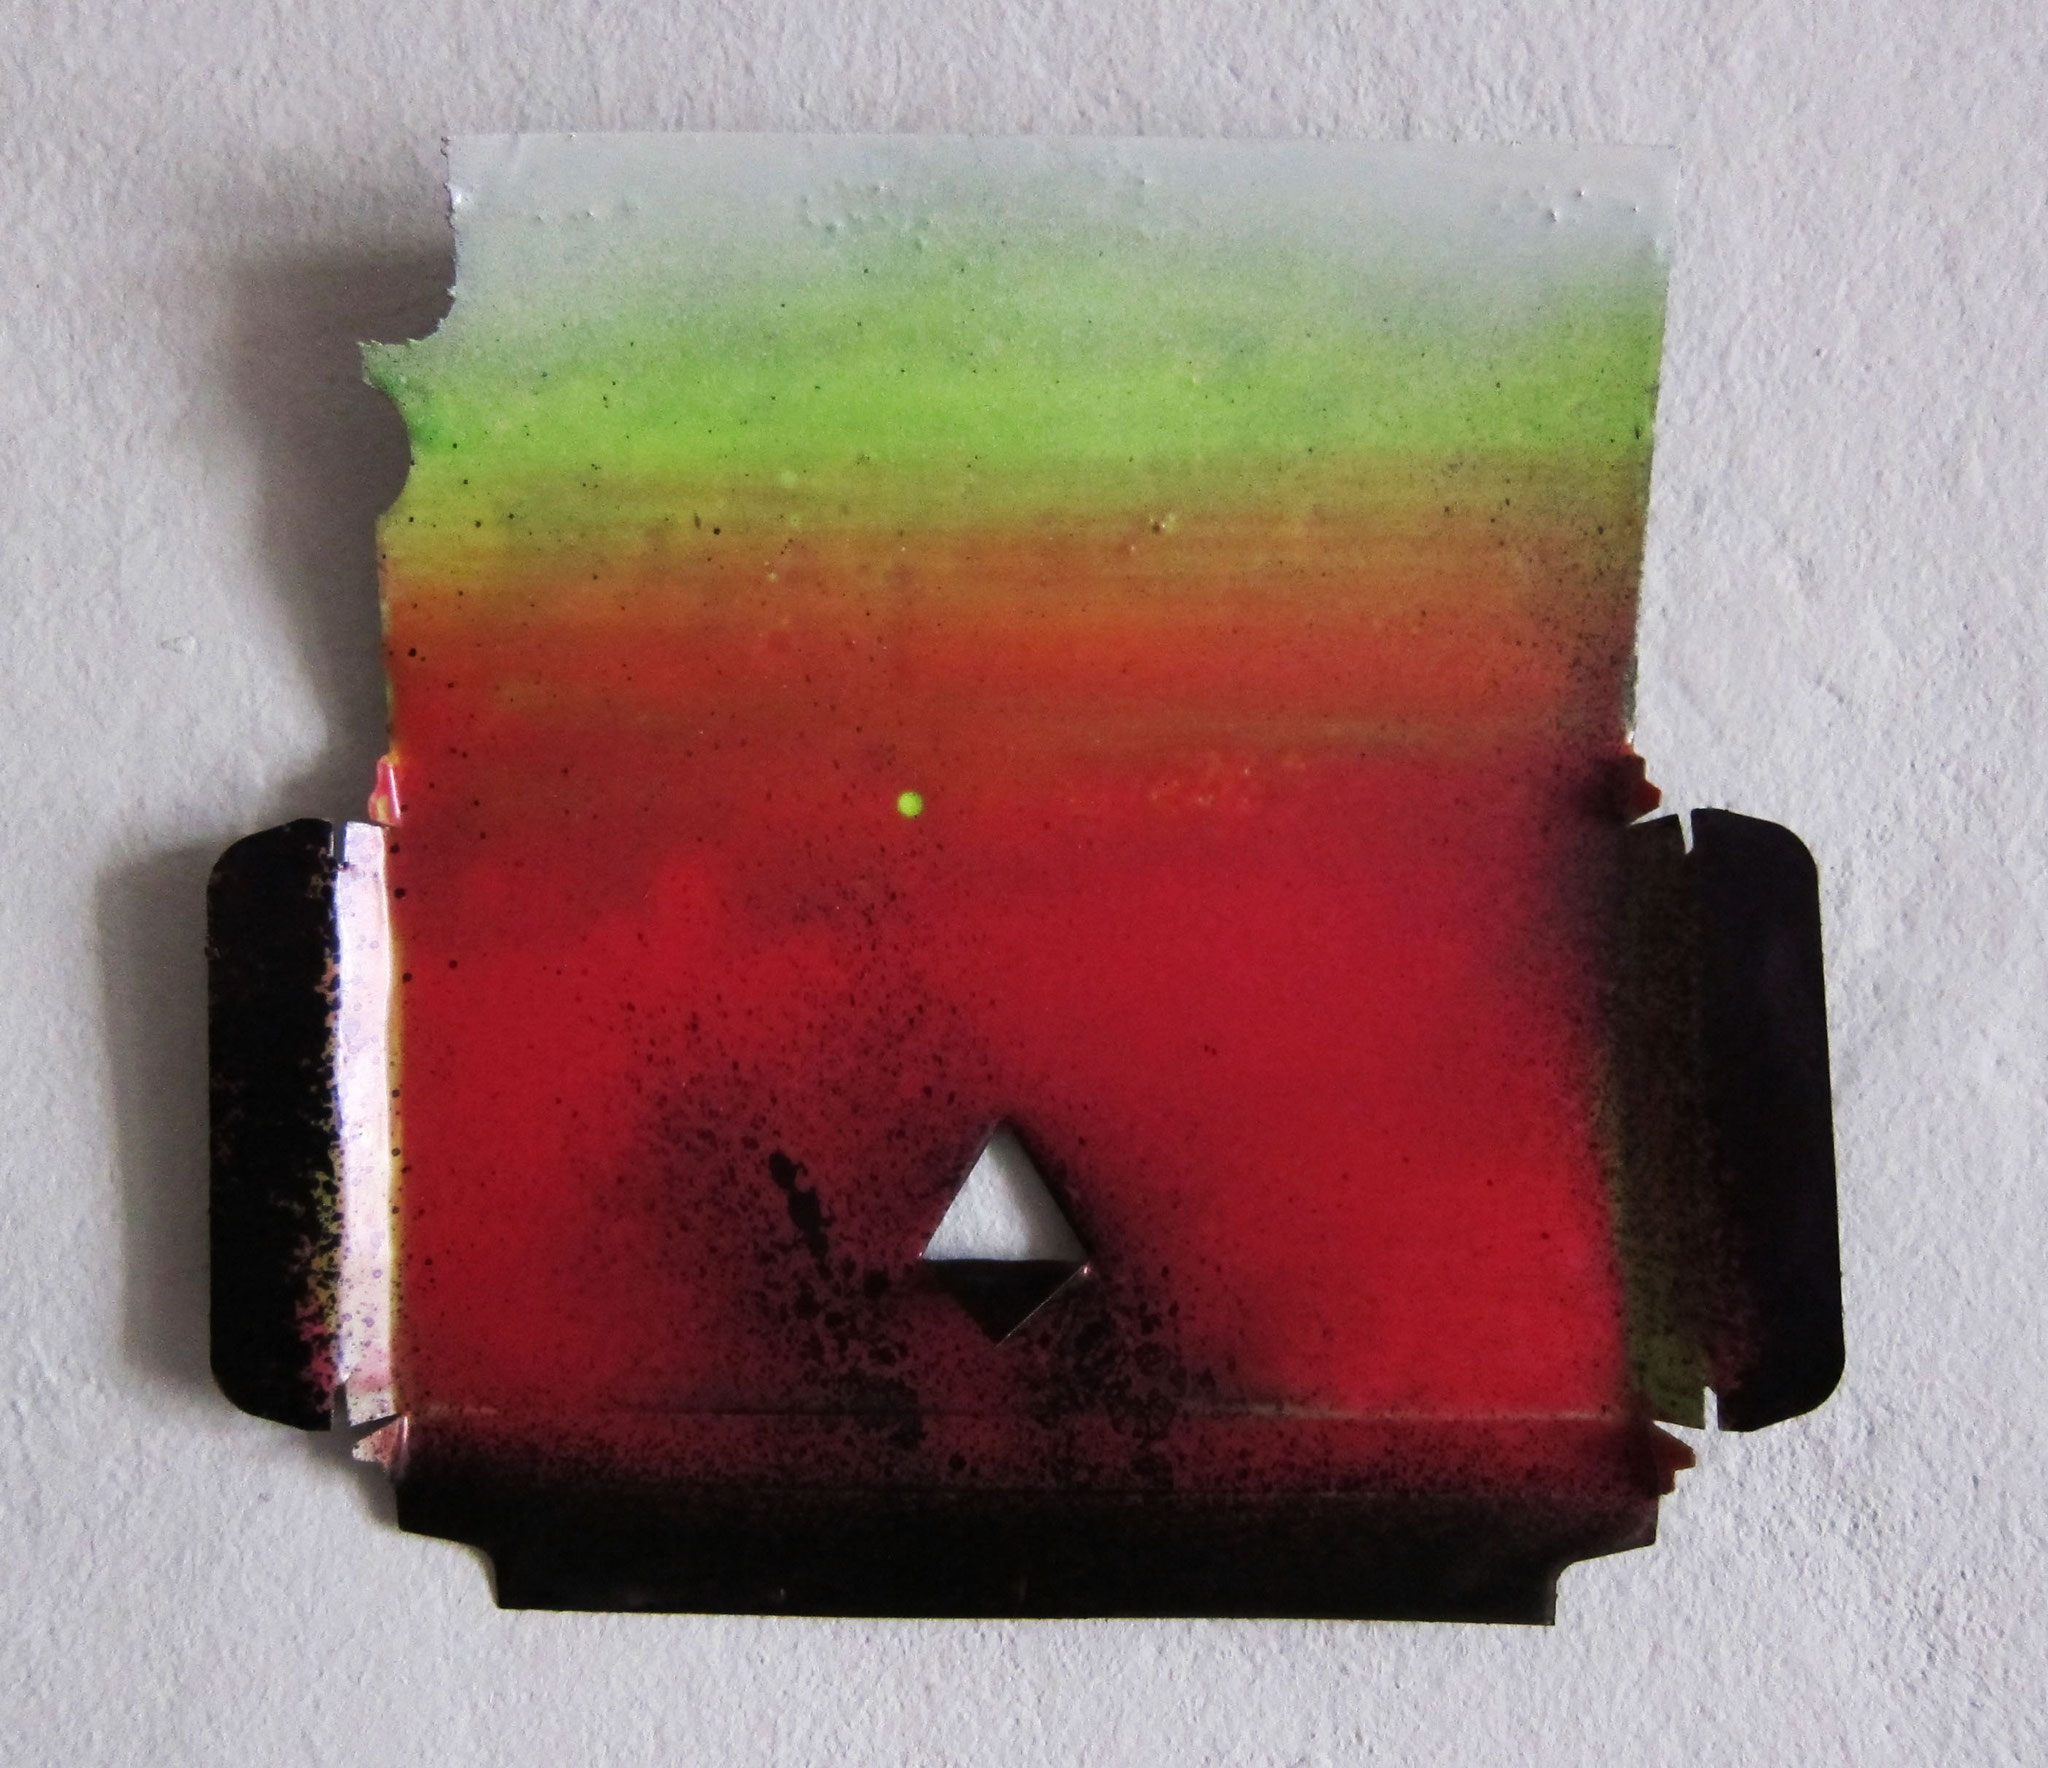 iChoc, 2016, carton coated with epoxy resin, 18x20cm